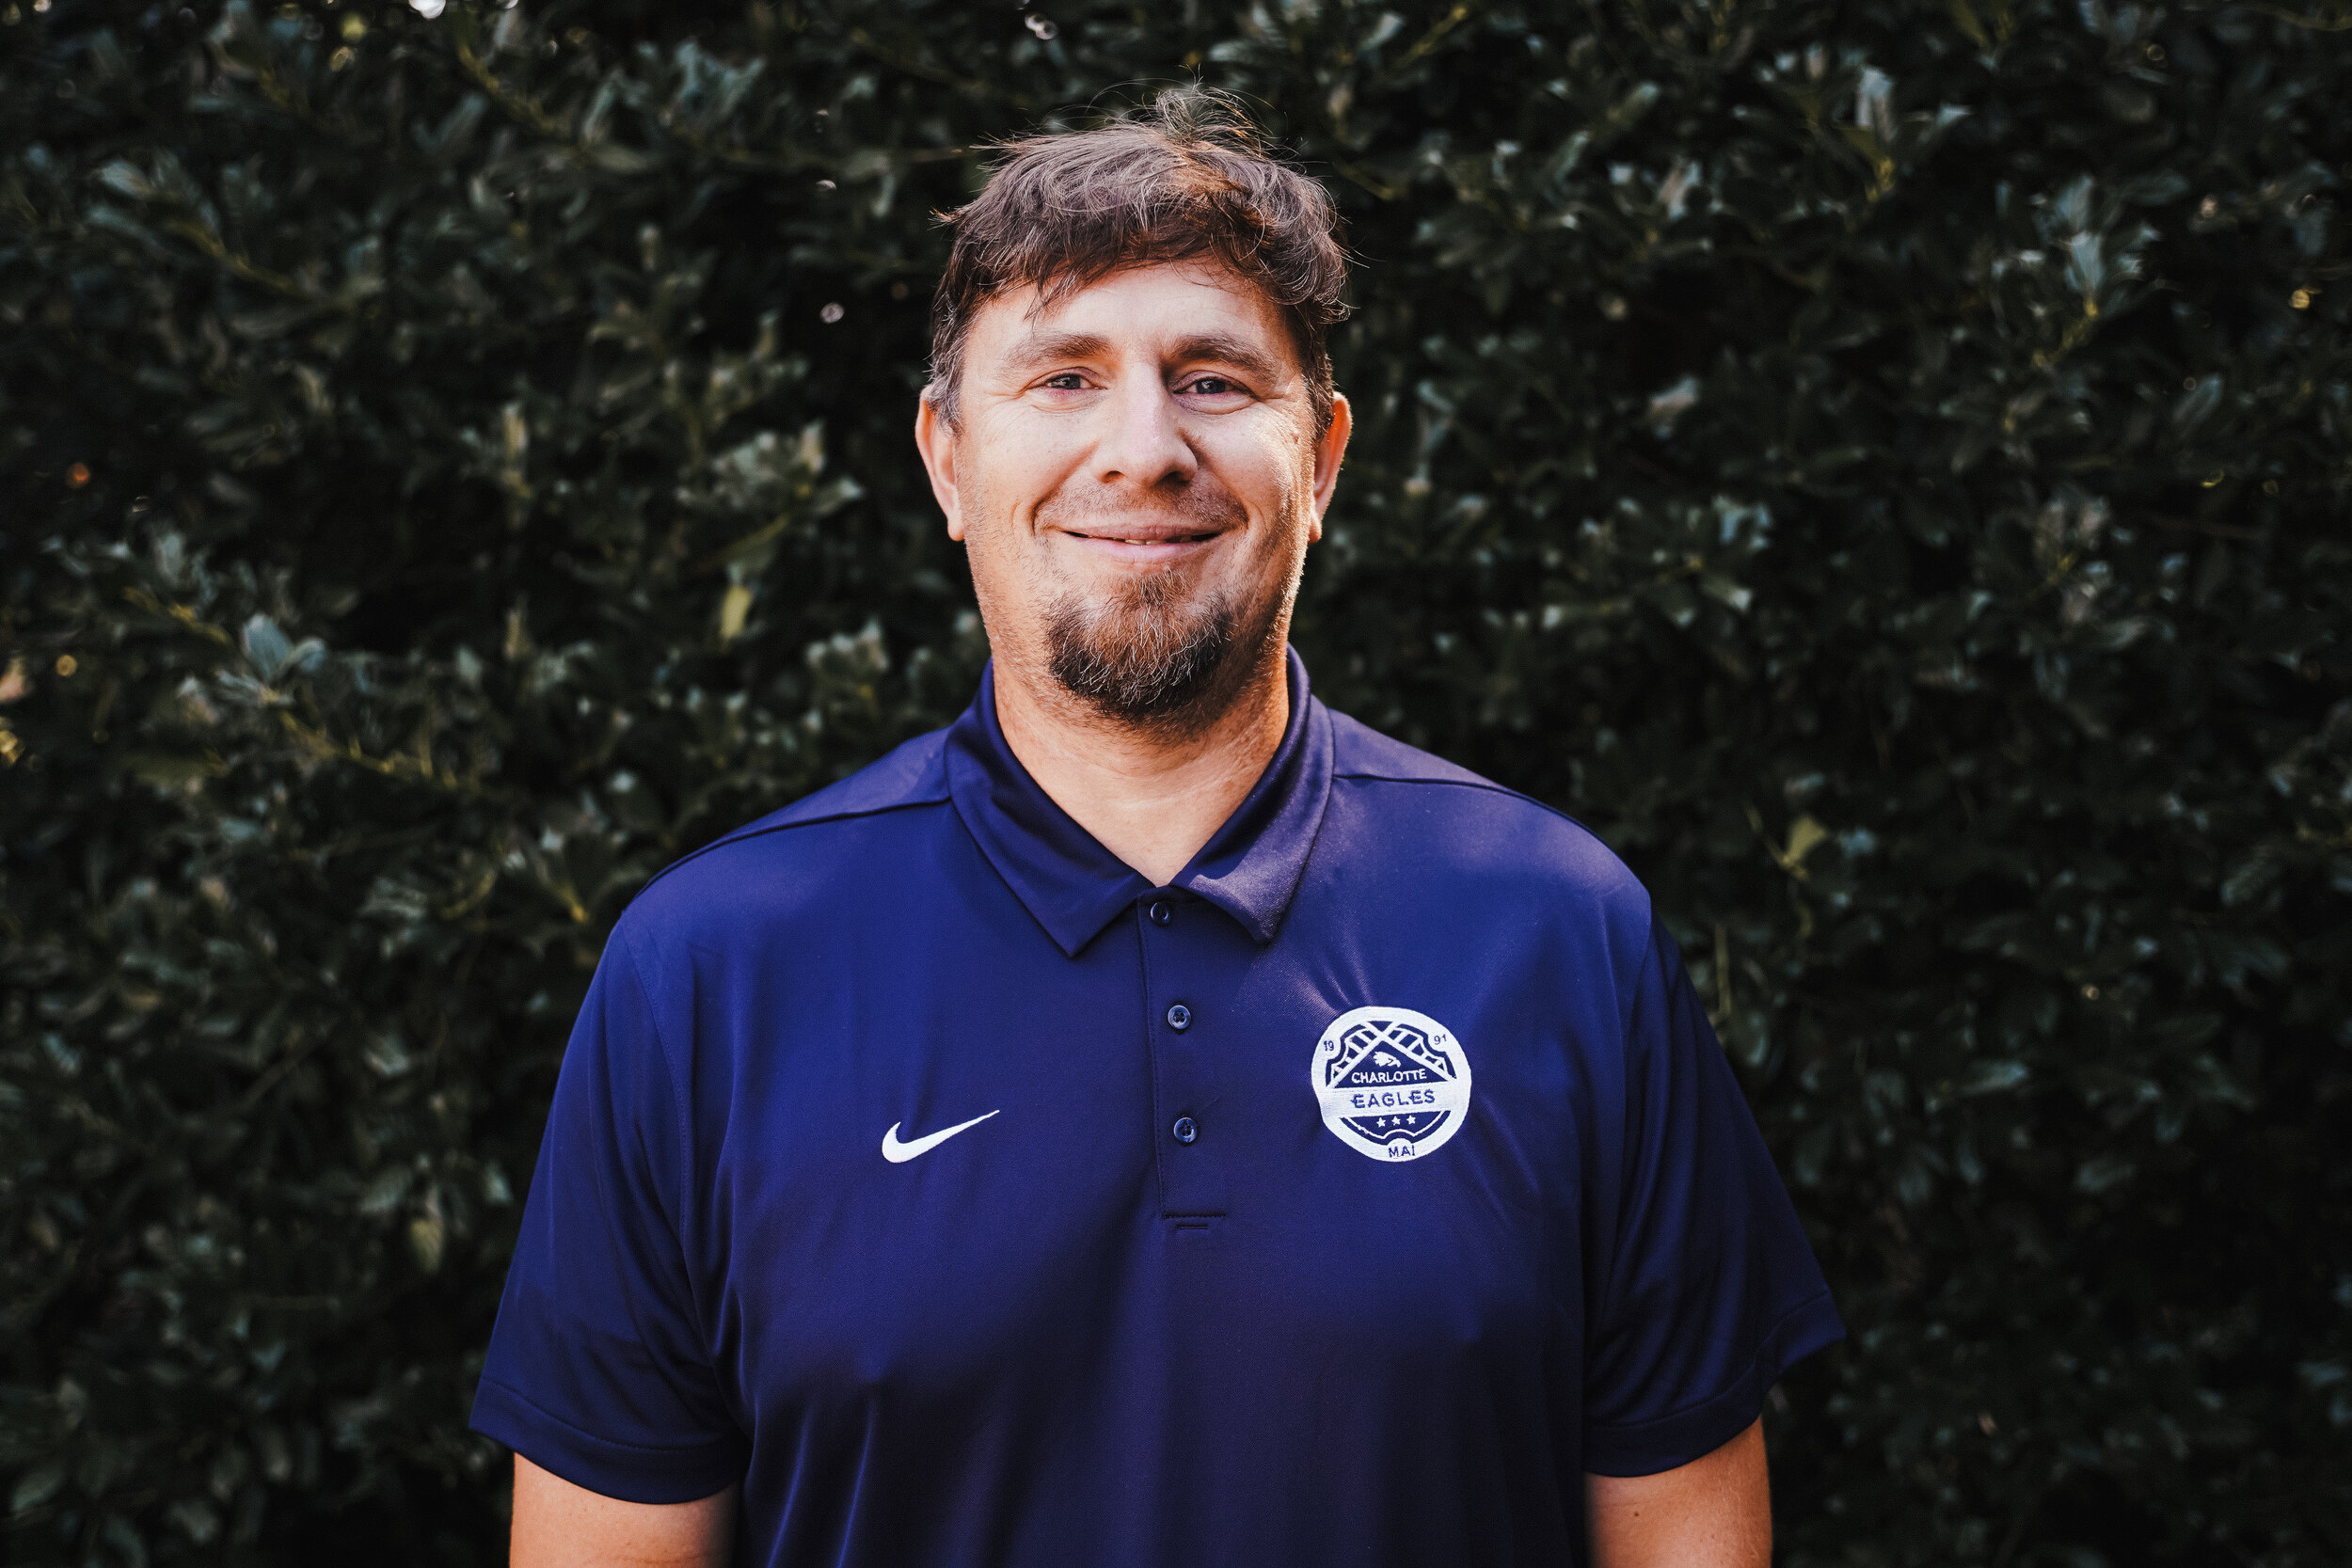 MIKE FREACE - Charlotte Eagles Executive Director and Youth Club Coach